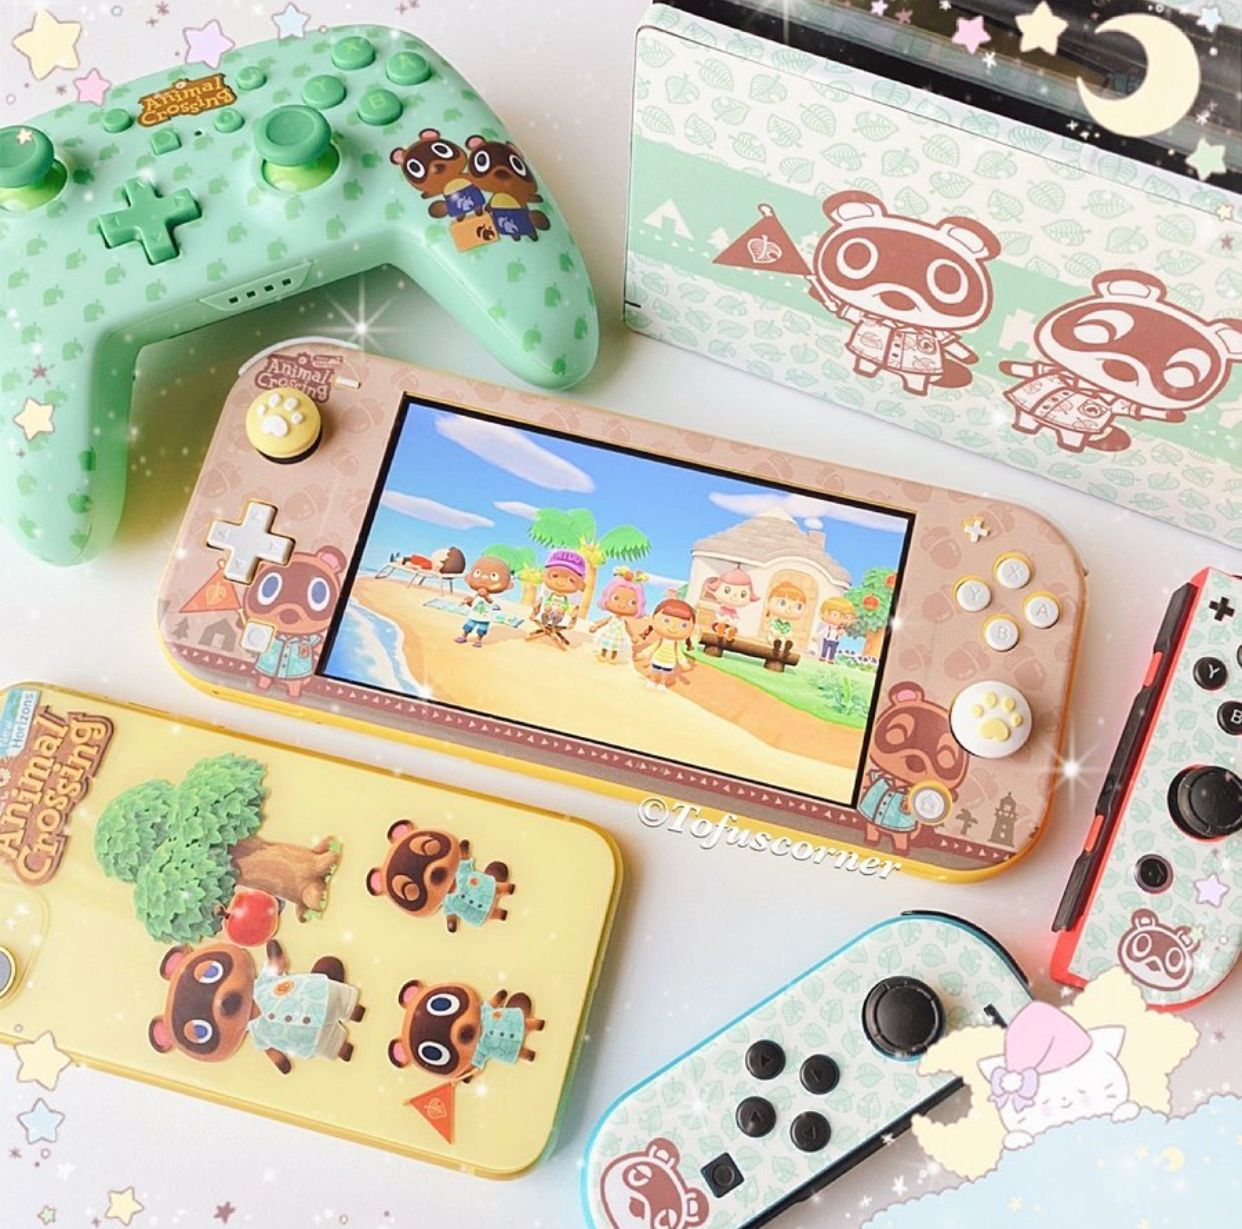 16+ Animal crossing phone case images